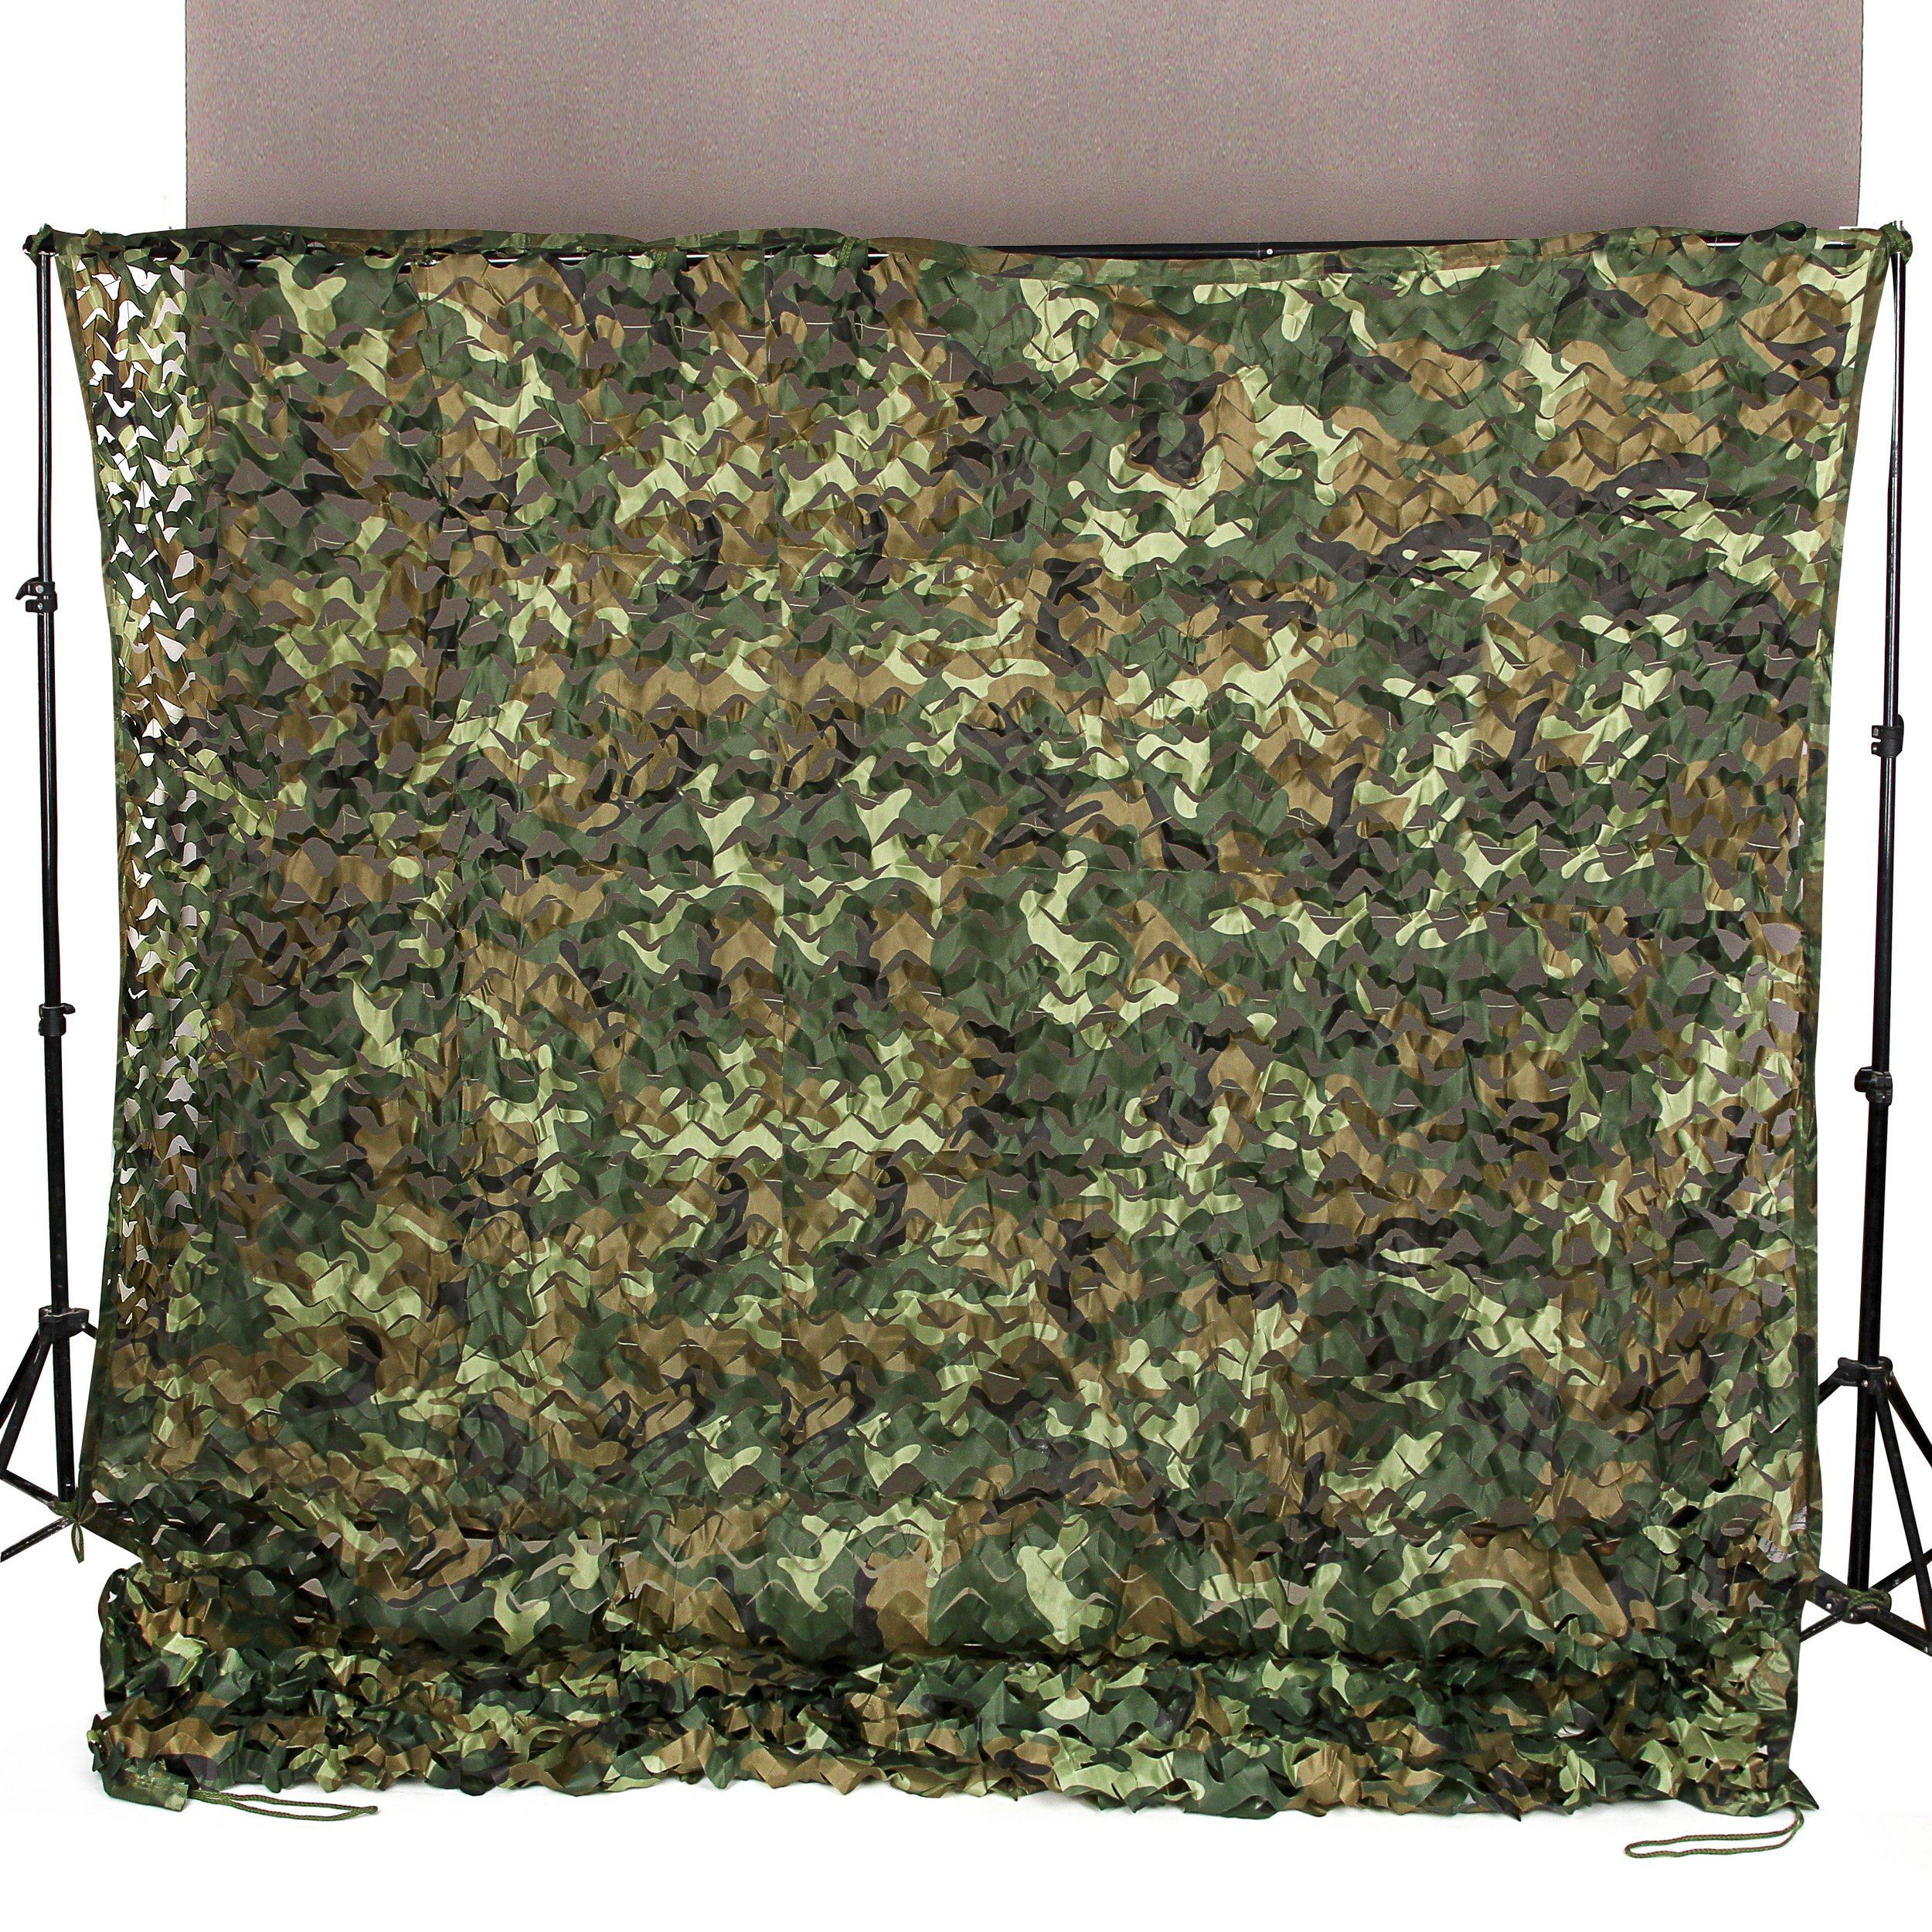 Ginsco 6.5ft x 10ft 2mx3m Woodland Camouflage Netting Desert Camo Net for Camping Military Hunting Shooting Blind Watching Hide Party Decorations by Ginsco